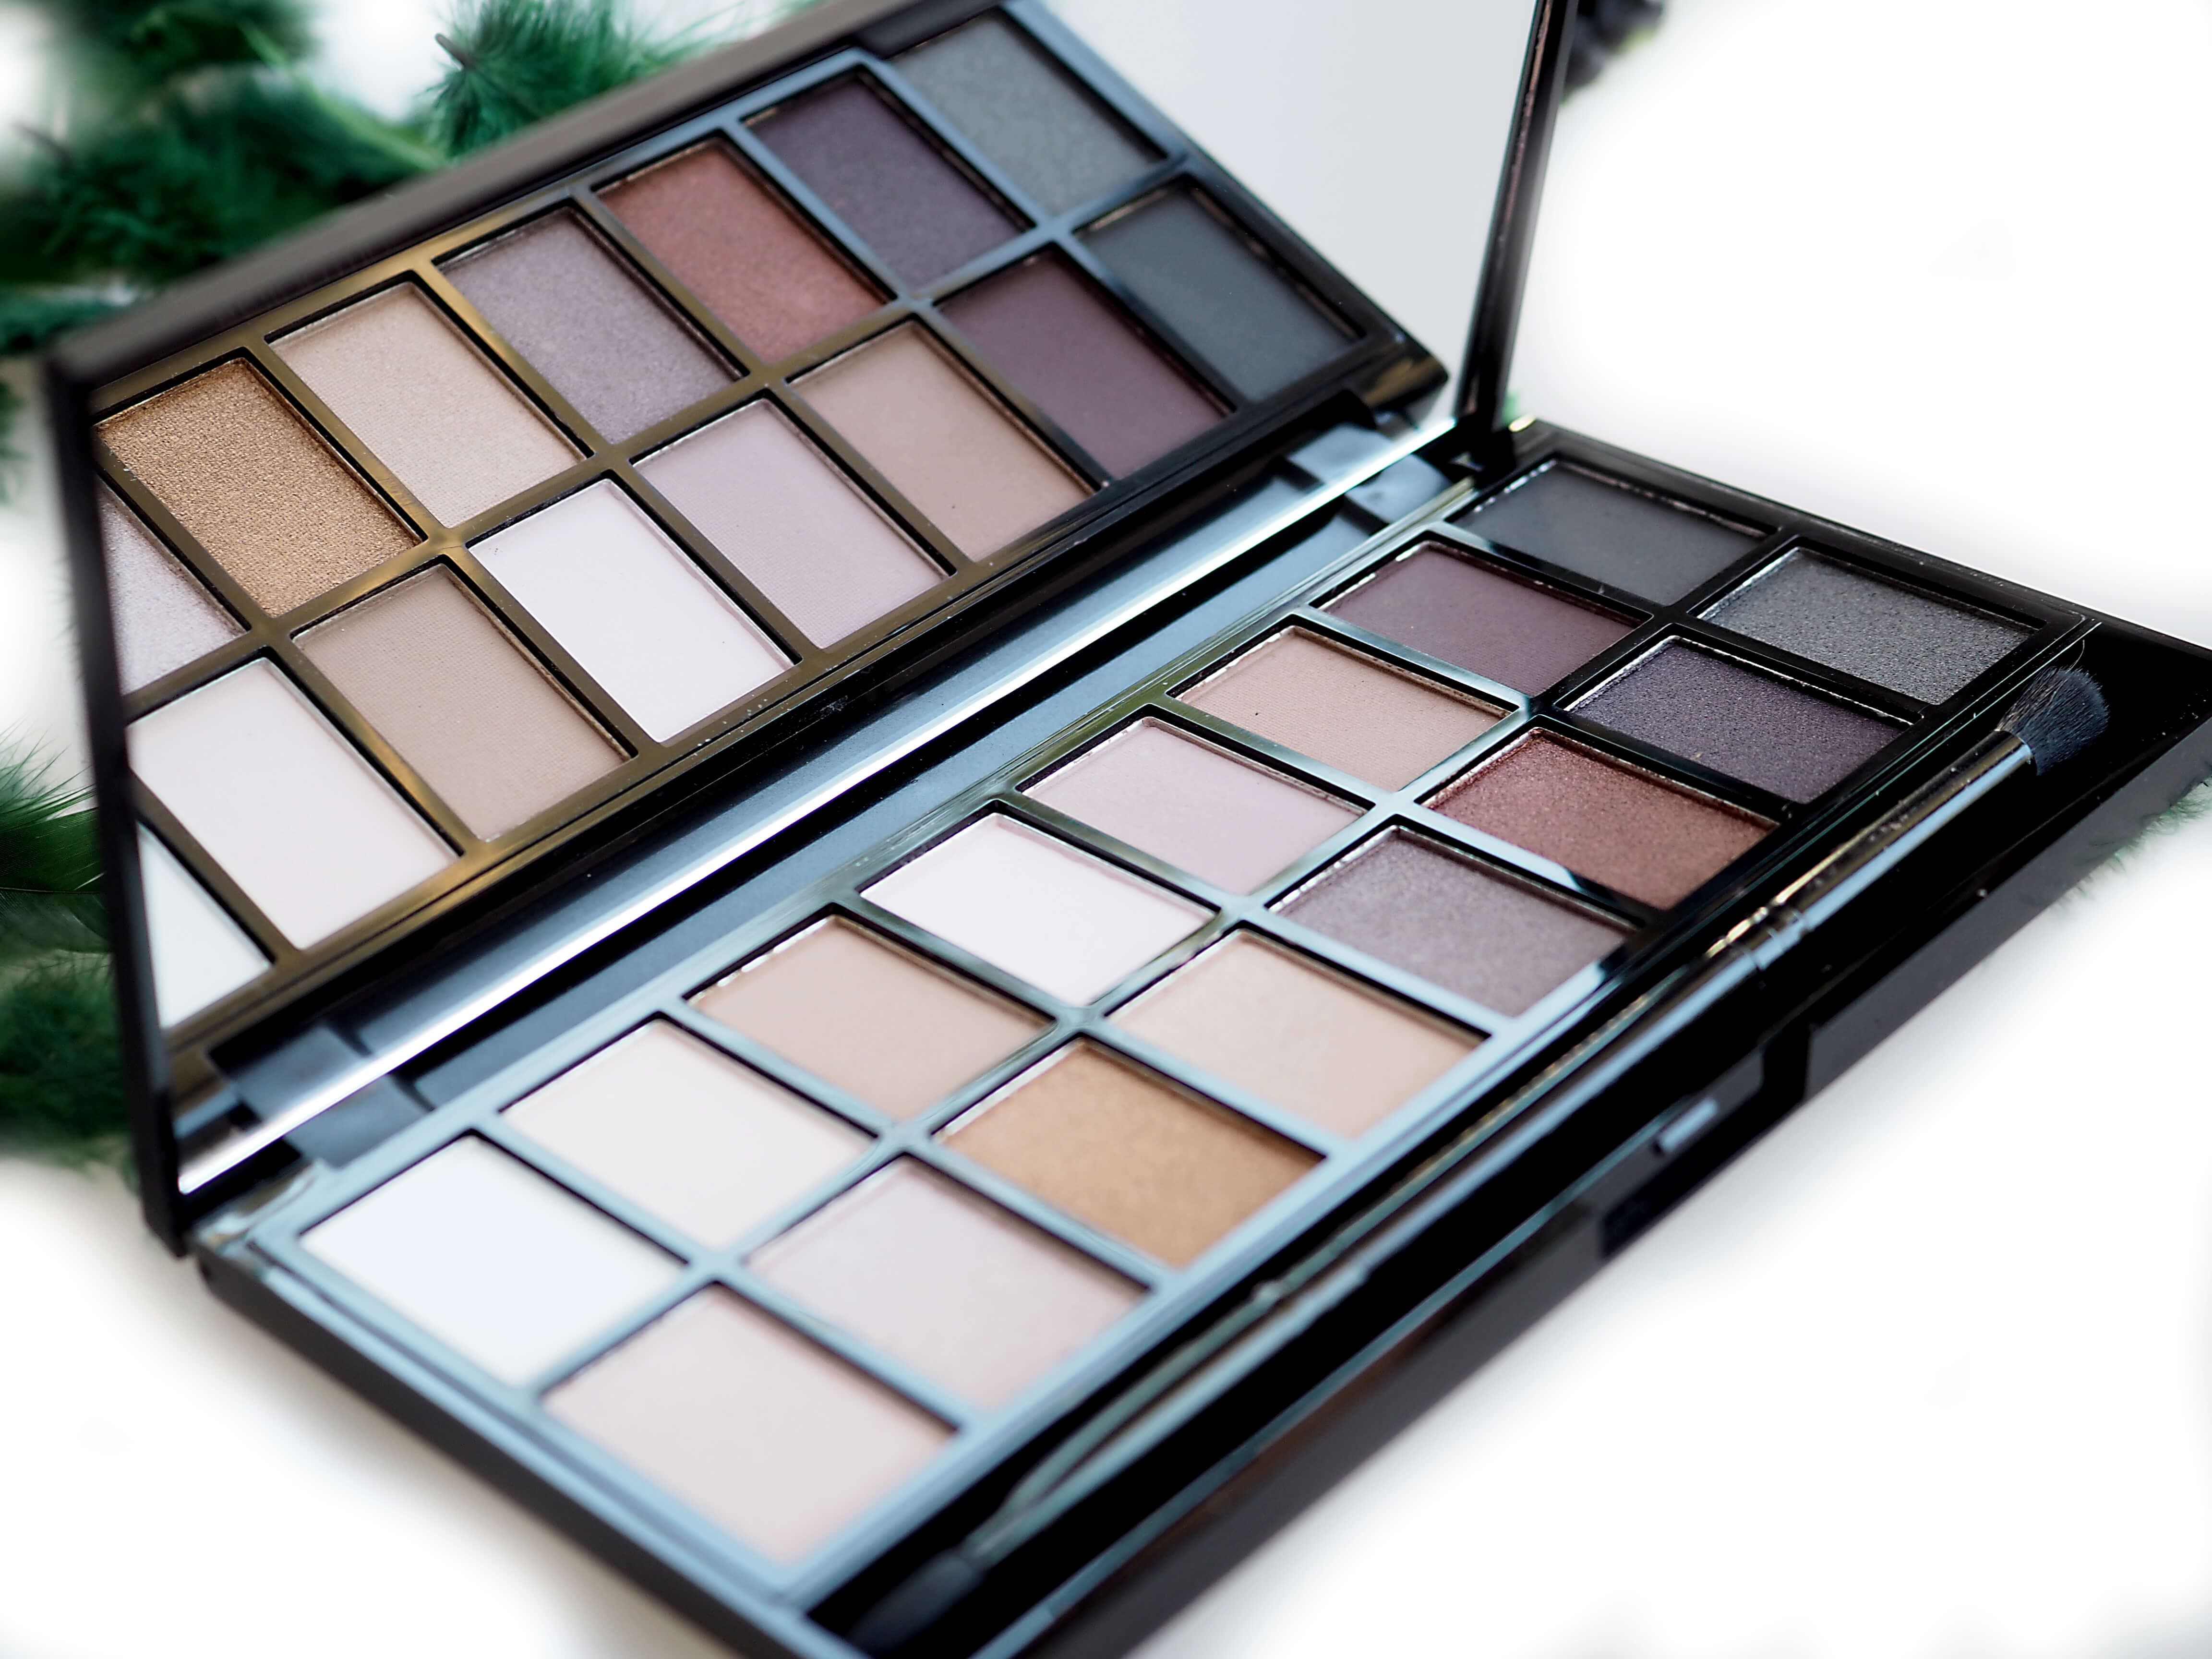 Recenzja MAKEUP REVOLUTION ICONIC PRO 1